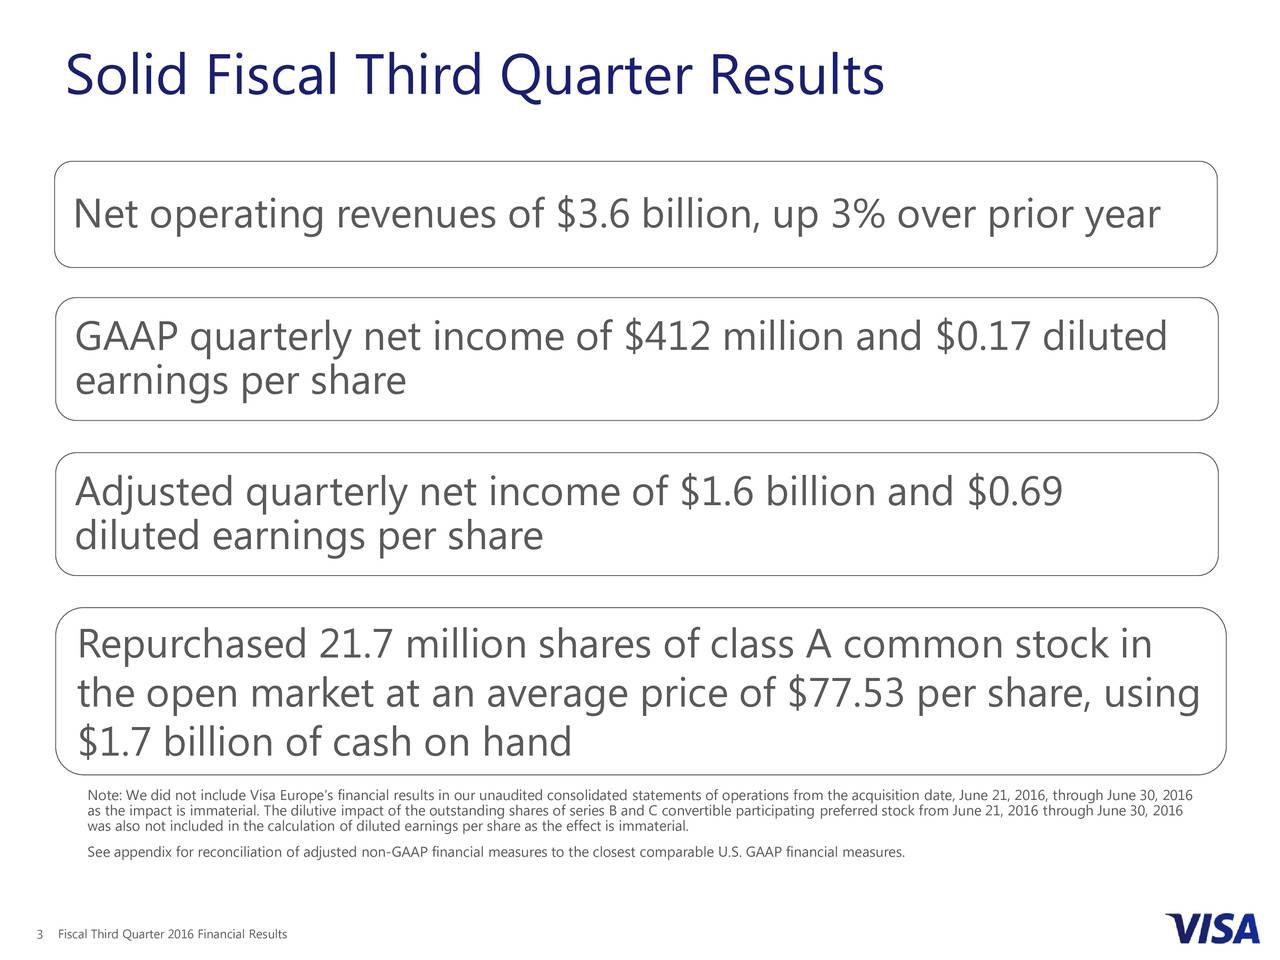 Net operating revenues of $3.6 billion, up 3% over prior year GAAP quarterly net income of $412 million and $0.17 diluted earnings per share Adjusted quarterly net income of $1.6 billion and $0.69 diluted earnings per share Repurchased 21.7 million shares of class A common stock in the open market at an average price of $77.53 per share, using $1.7 billion of cash on hand as the impact is immaterial. The dilutive impact of the outstanding shares of series B and C convertible participating preferred stock from June 21, 2016 through June 30, 20166 was also not included in the calculation of diluted earnings per share as the effect is immaterial. See appendix for reconciliation of adjusted non-GAAP financial measuresto the closest comparable U.S. GAAP financial measures. 3 Fiscal Third Quarter 2016 Financial Results